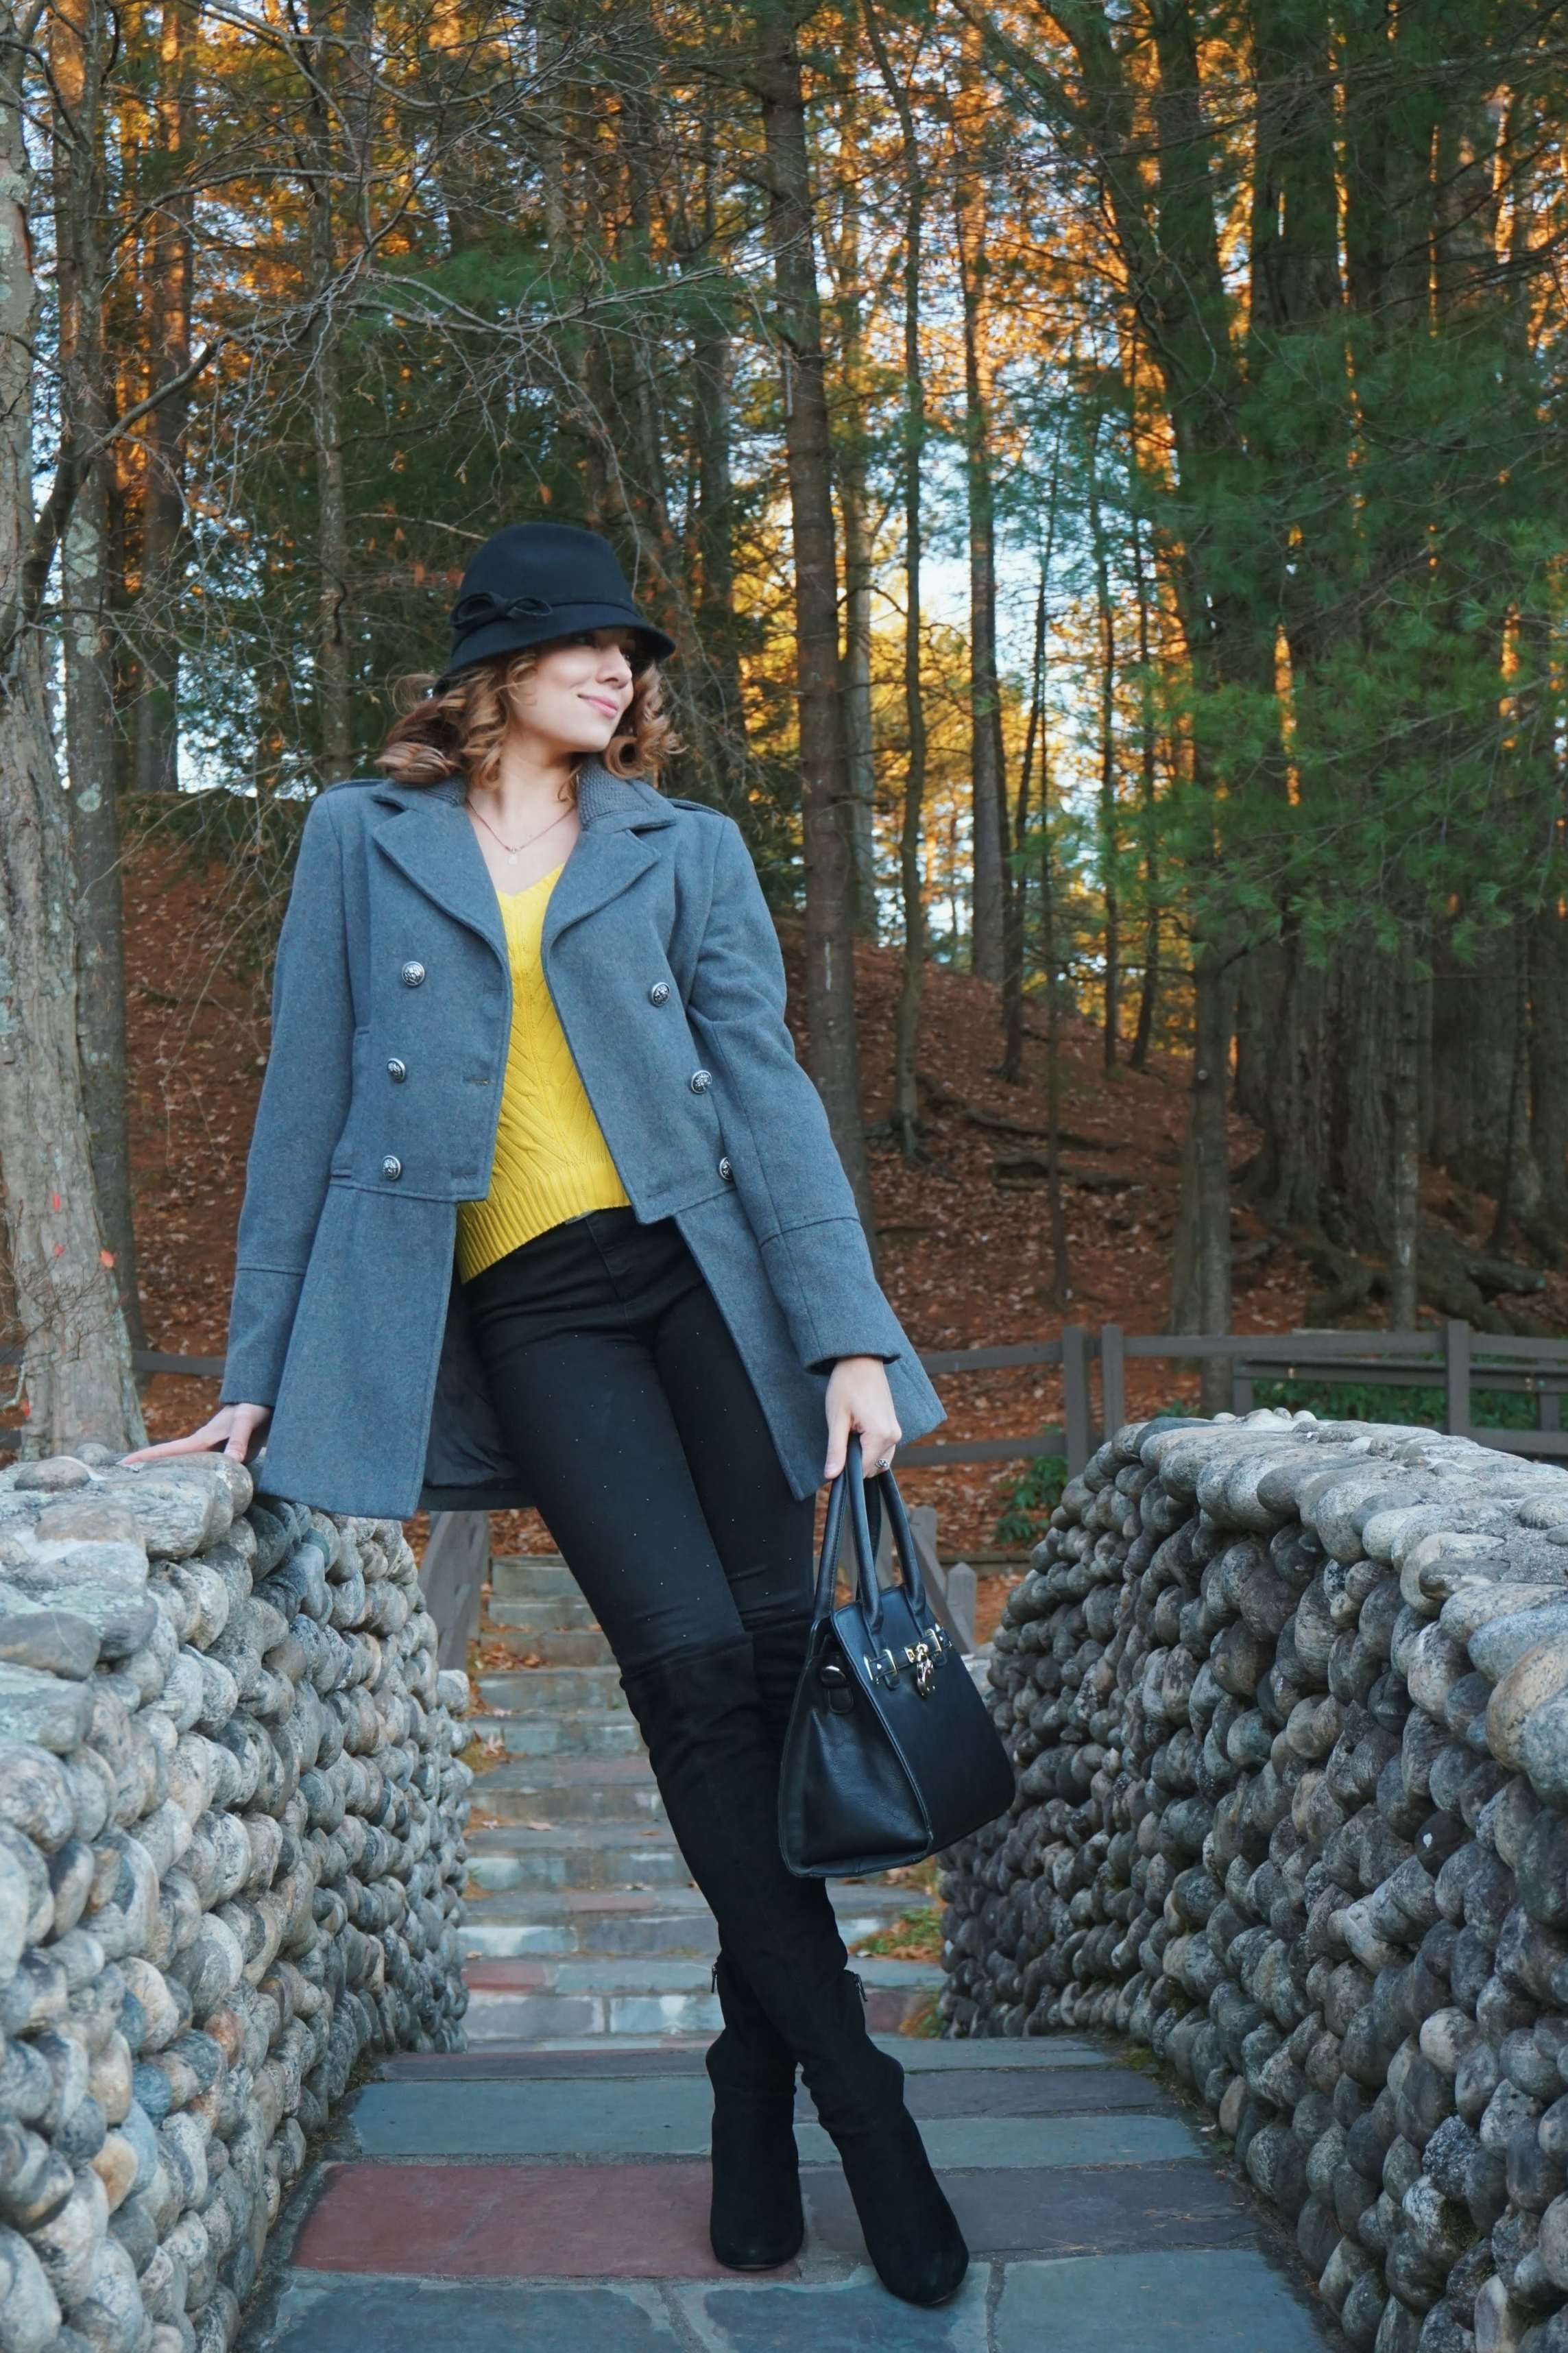 Fall outfit inspiration 2017: black Jennifer Lopez jeans, yellow knitted sweater, thigh high boots, gray woolen sweater, black hat, and a black bag.